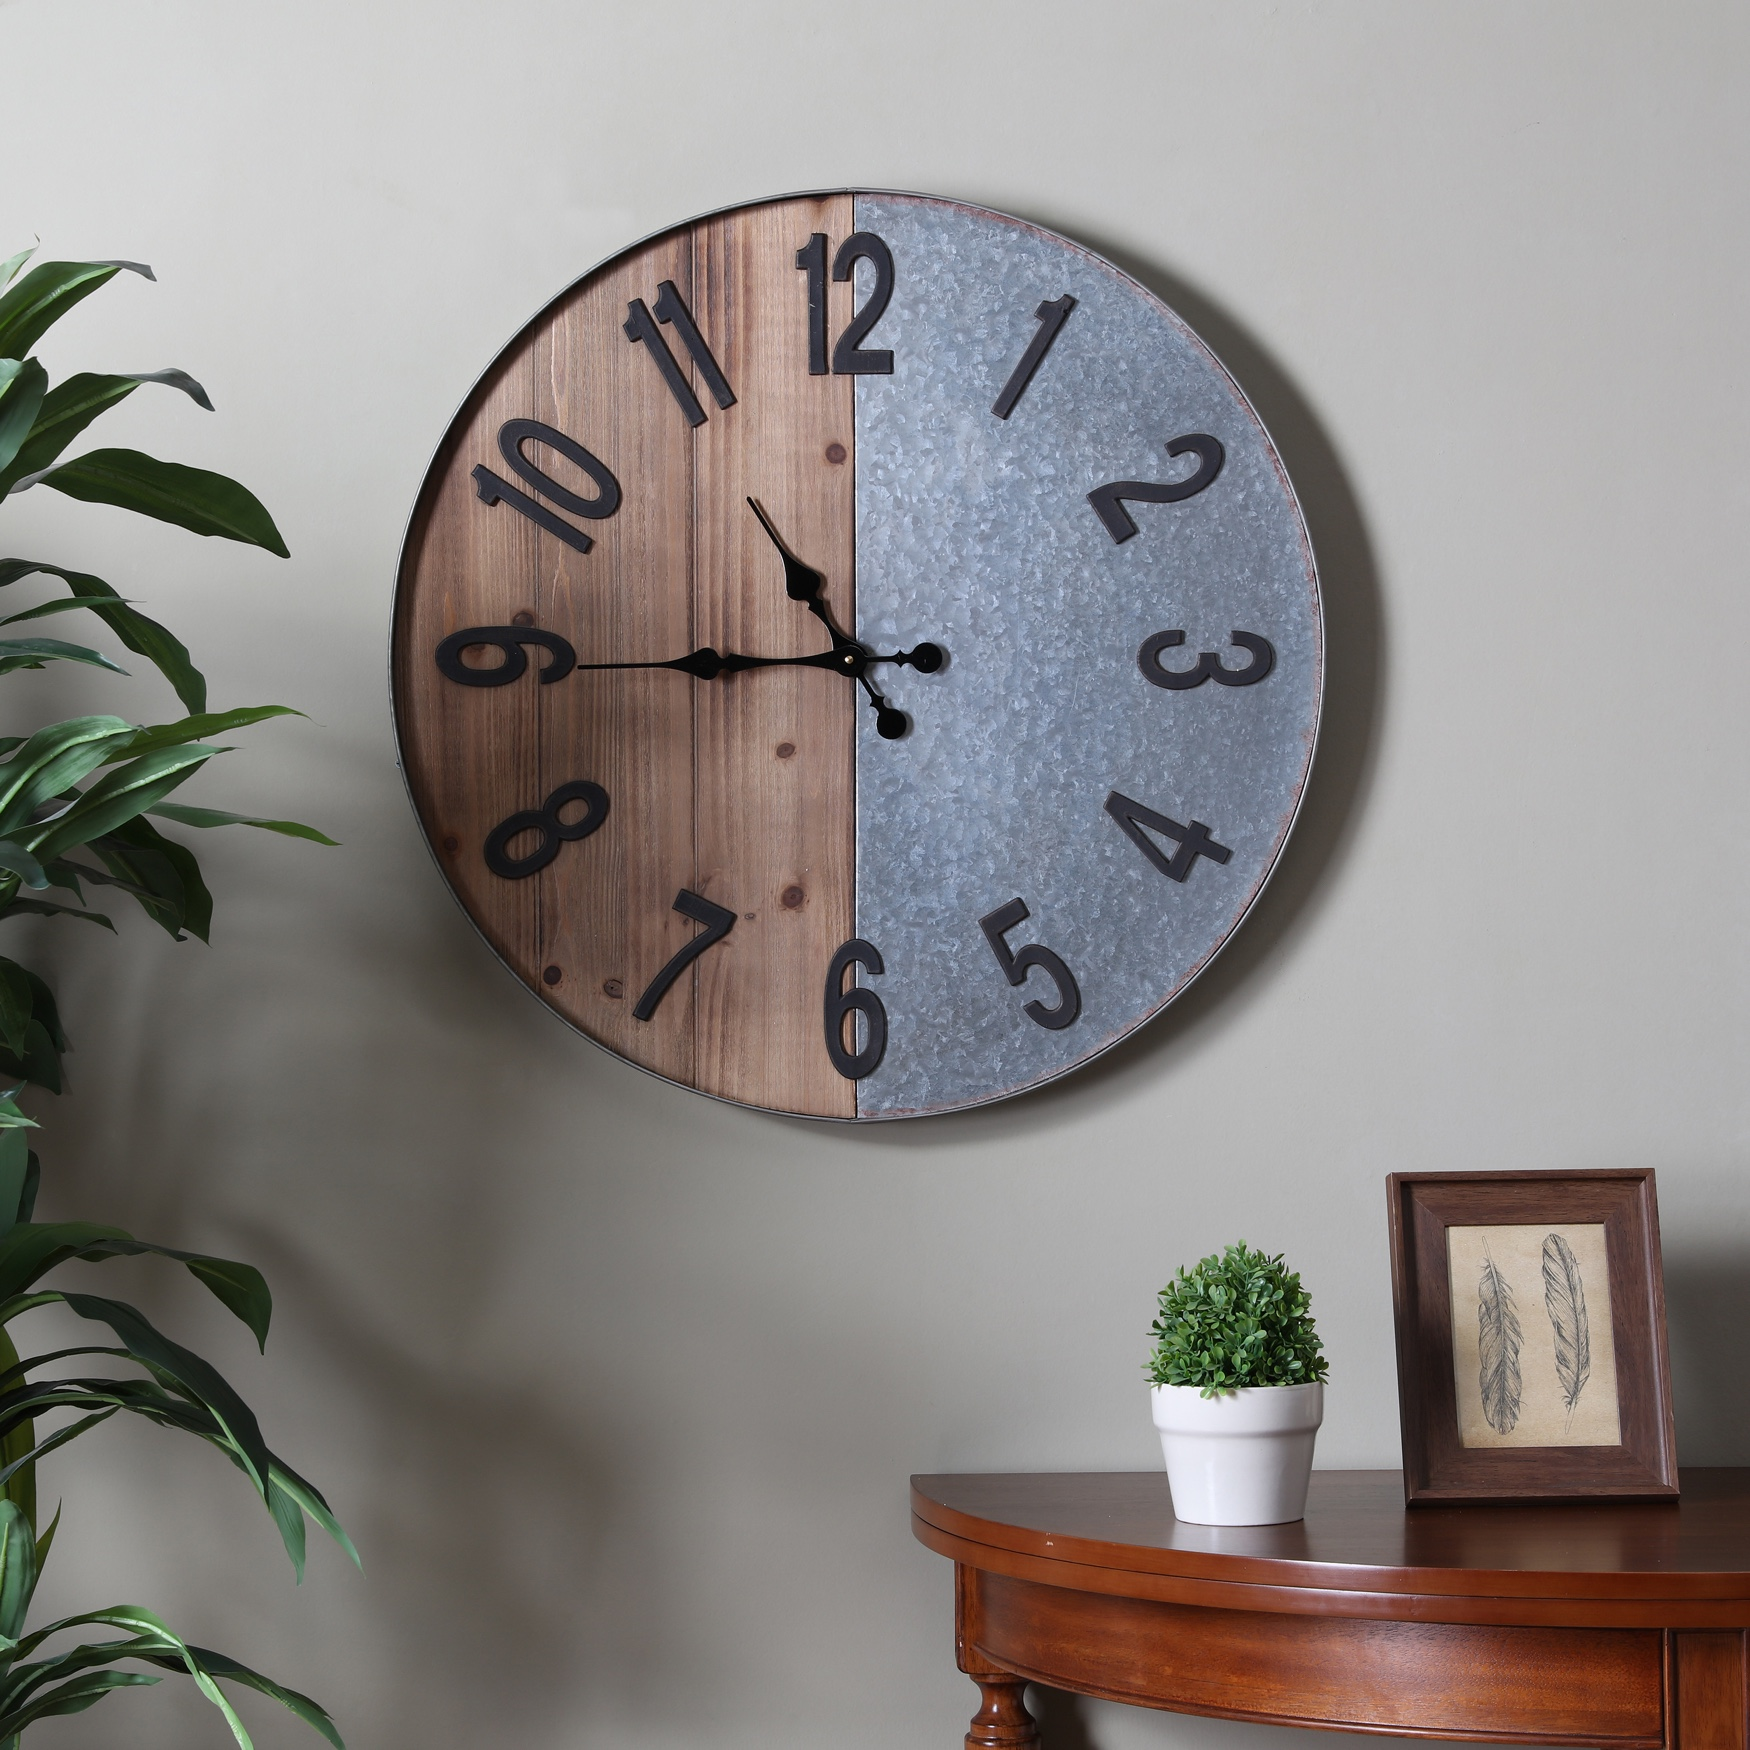 Gallen Industrial Wall Clock, WOOD